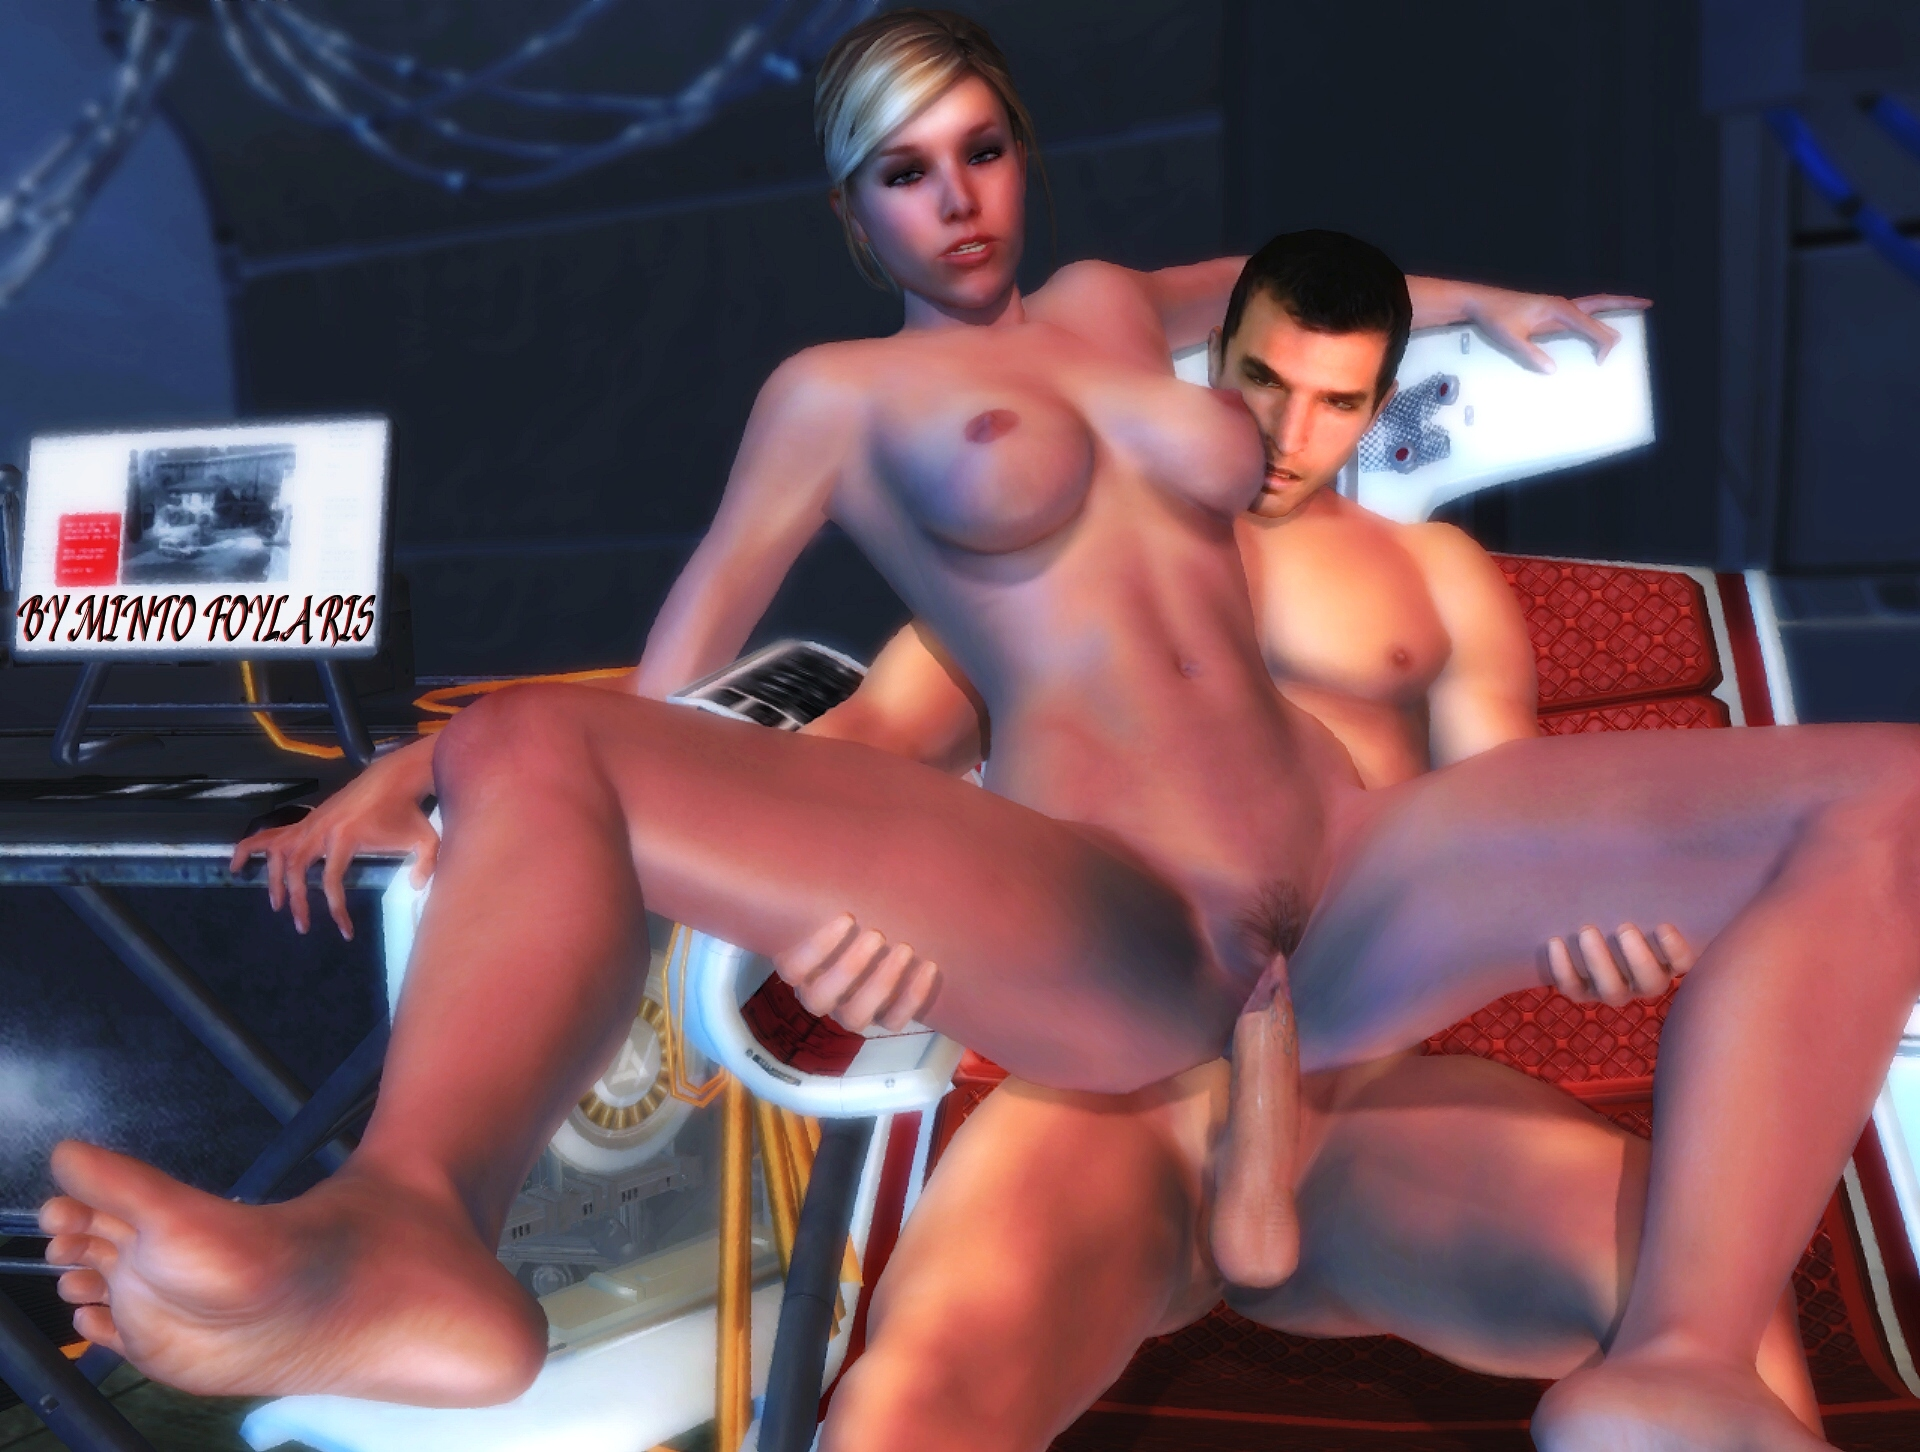 Rogue assassin sex scene erotica video